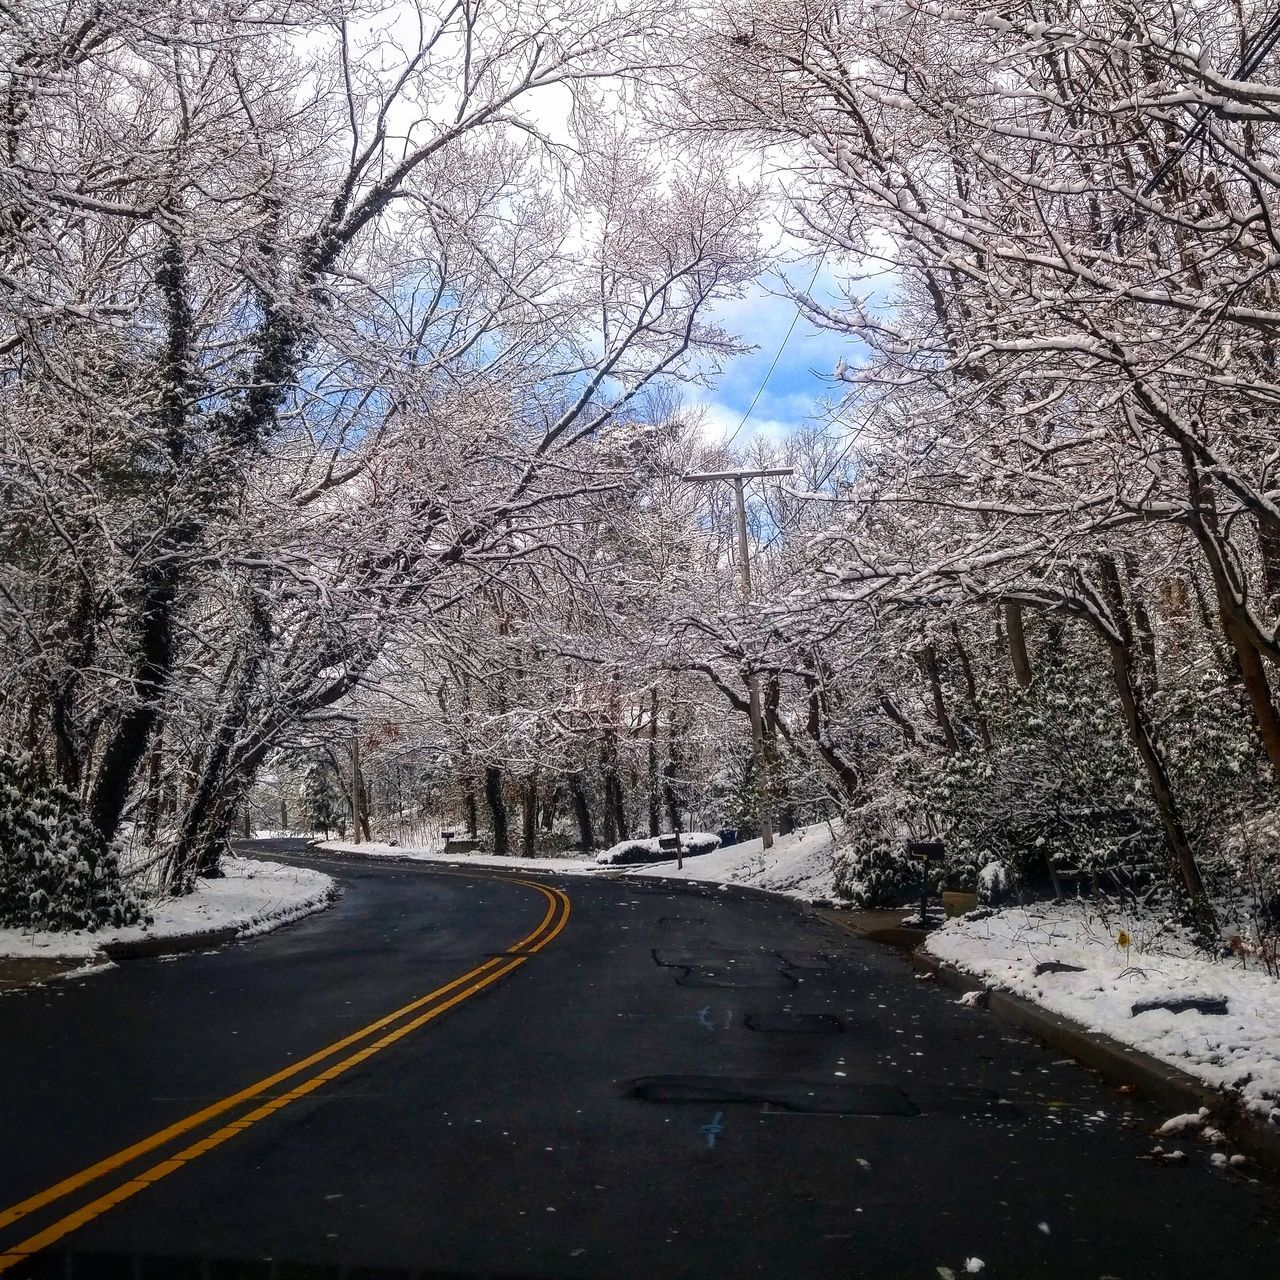 Sky Tree No People Day Outdoors Road Nature Beauty In Nature Winter Snow Ice New Jersey Amateurphotographer  PhonePhotography Outdoor PhotographyBeautiful It's All About Perception Check This Out Mother Nature Is Amazing